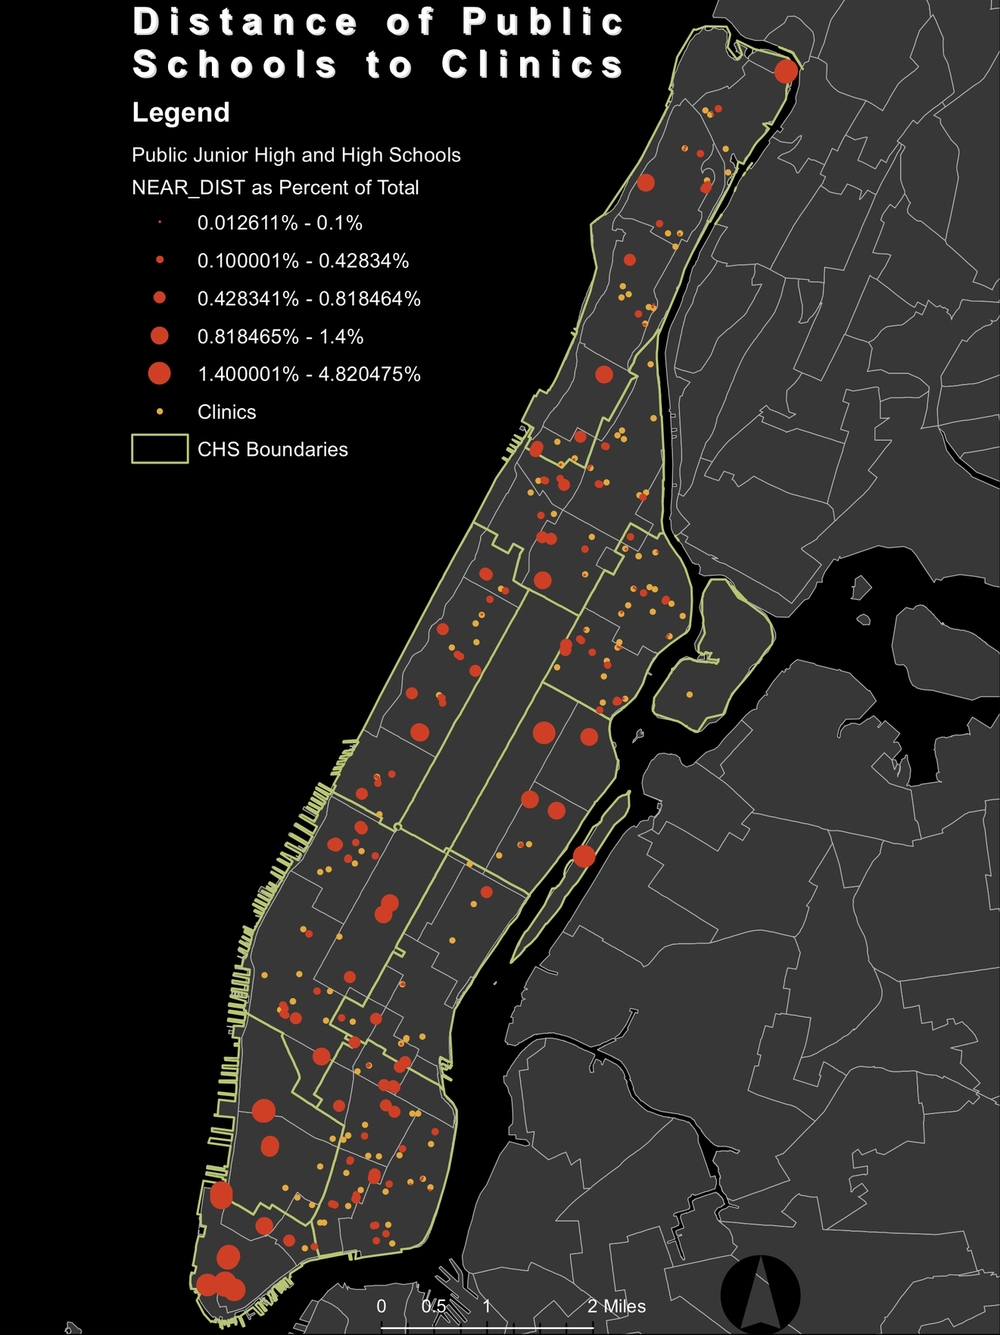 Health Clinic Distance from Public Schools   NYC sexual health clinic distance from census tract selected areas of high percent teen population, laid over percent teen population.